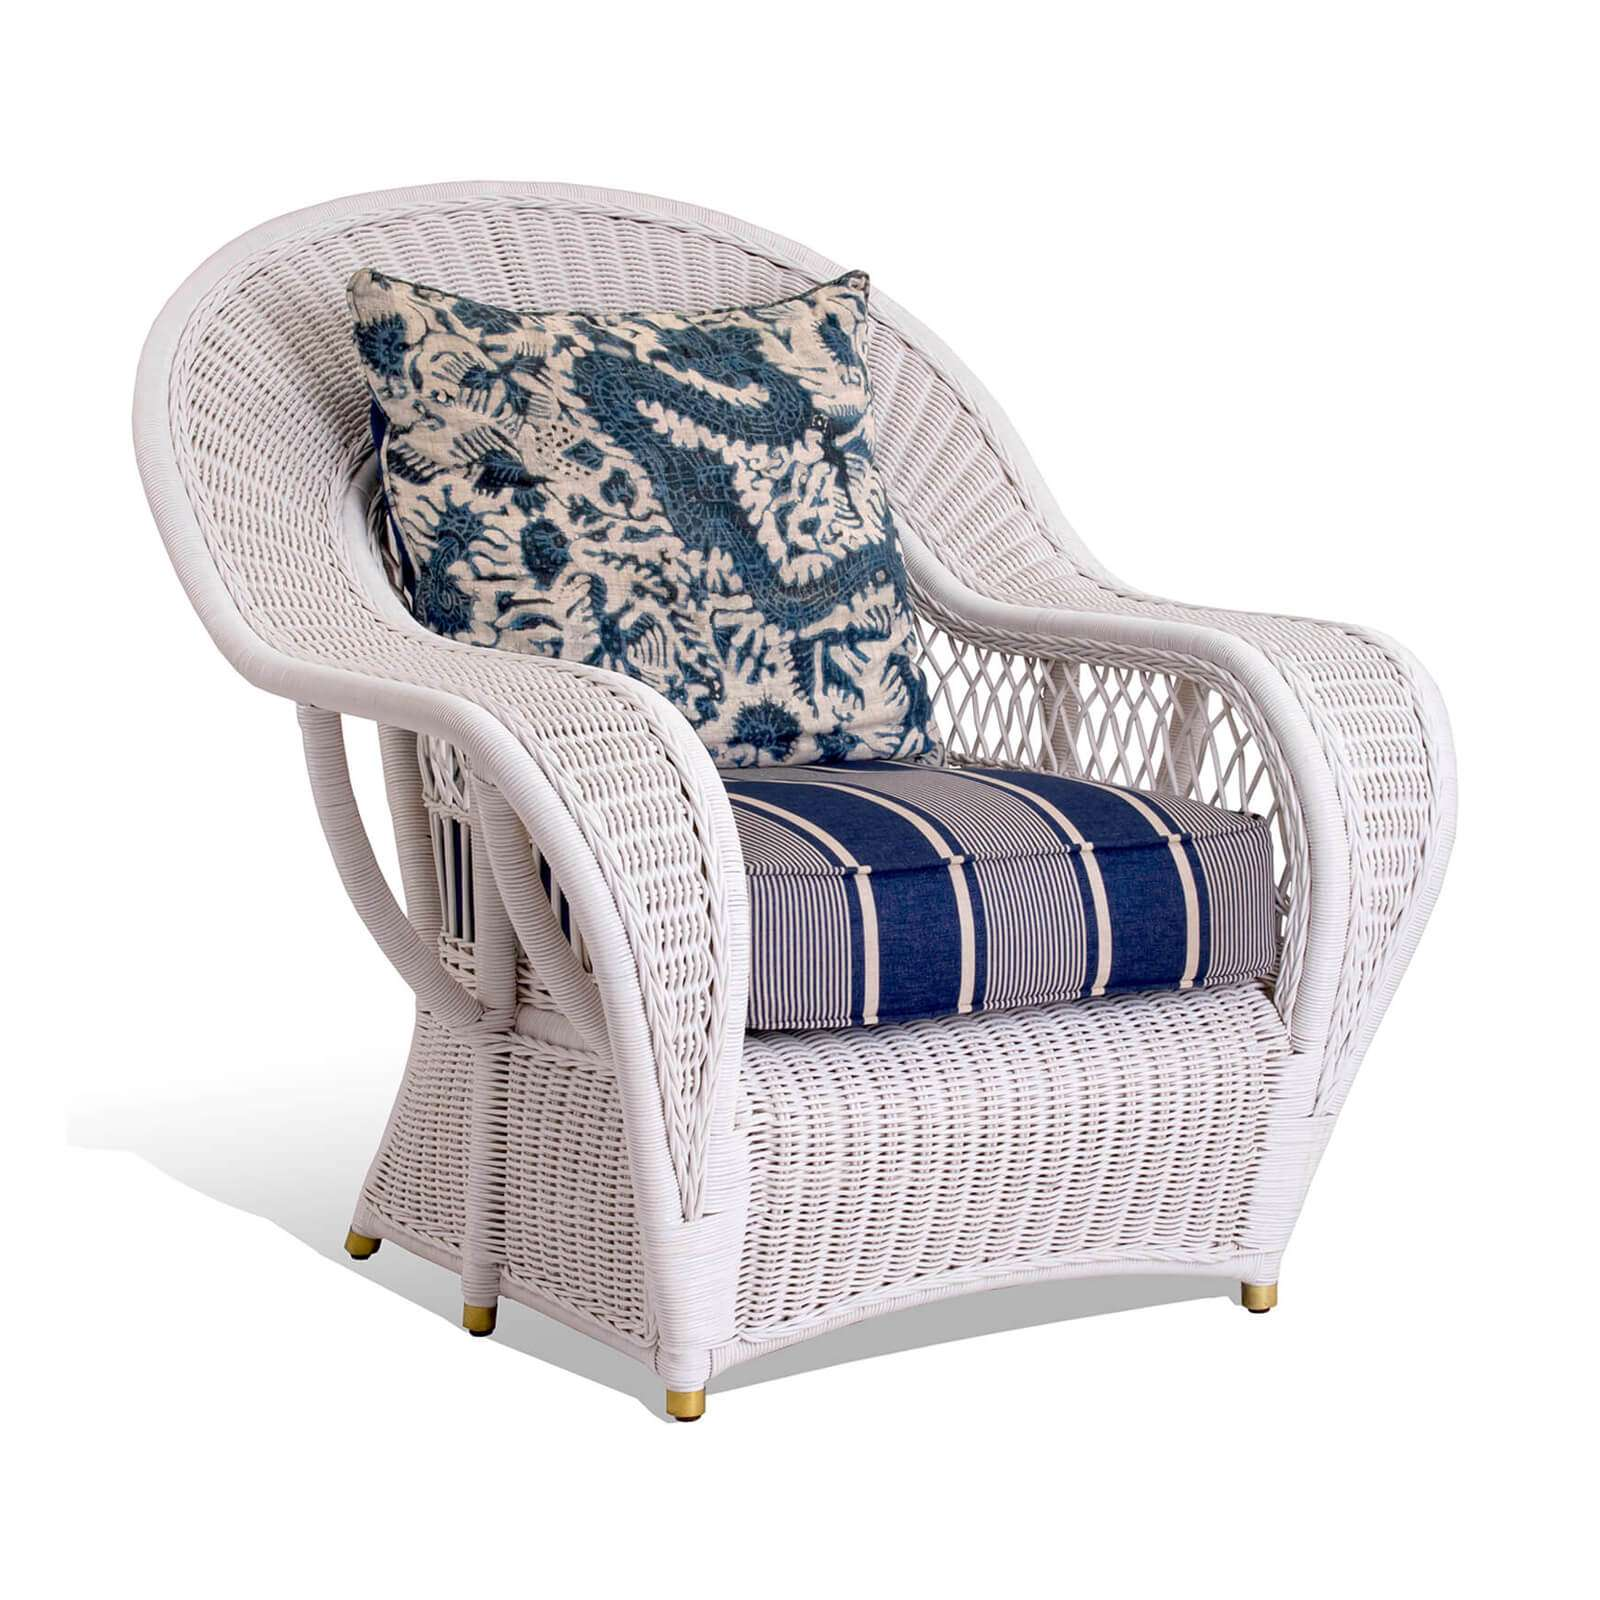 CALYPSO CHAIR 001 - STUART MEMBERY HOME COLLECTION